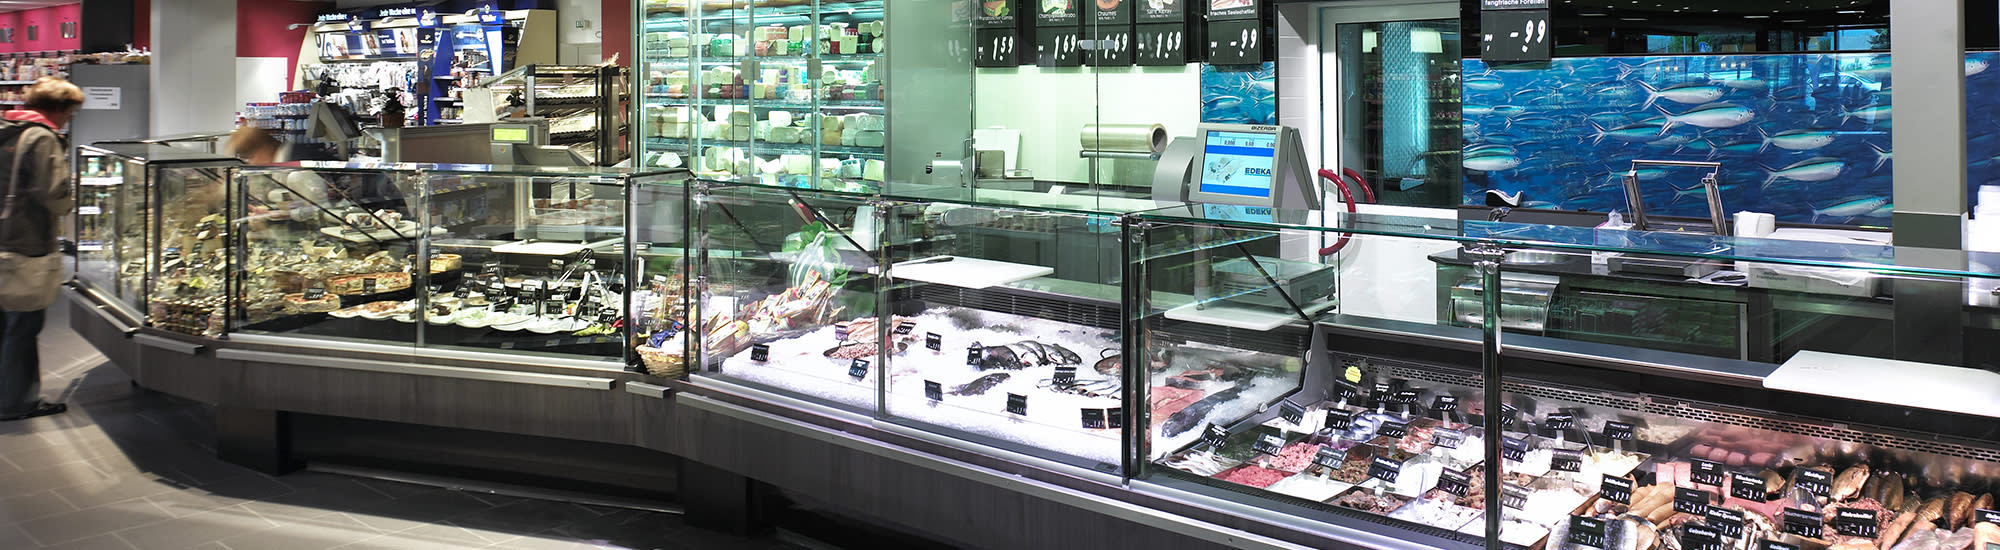 danaos-serve-over-counter-high-glass-superstructure_c